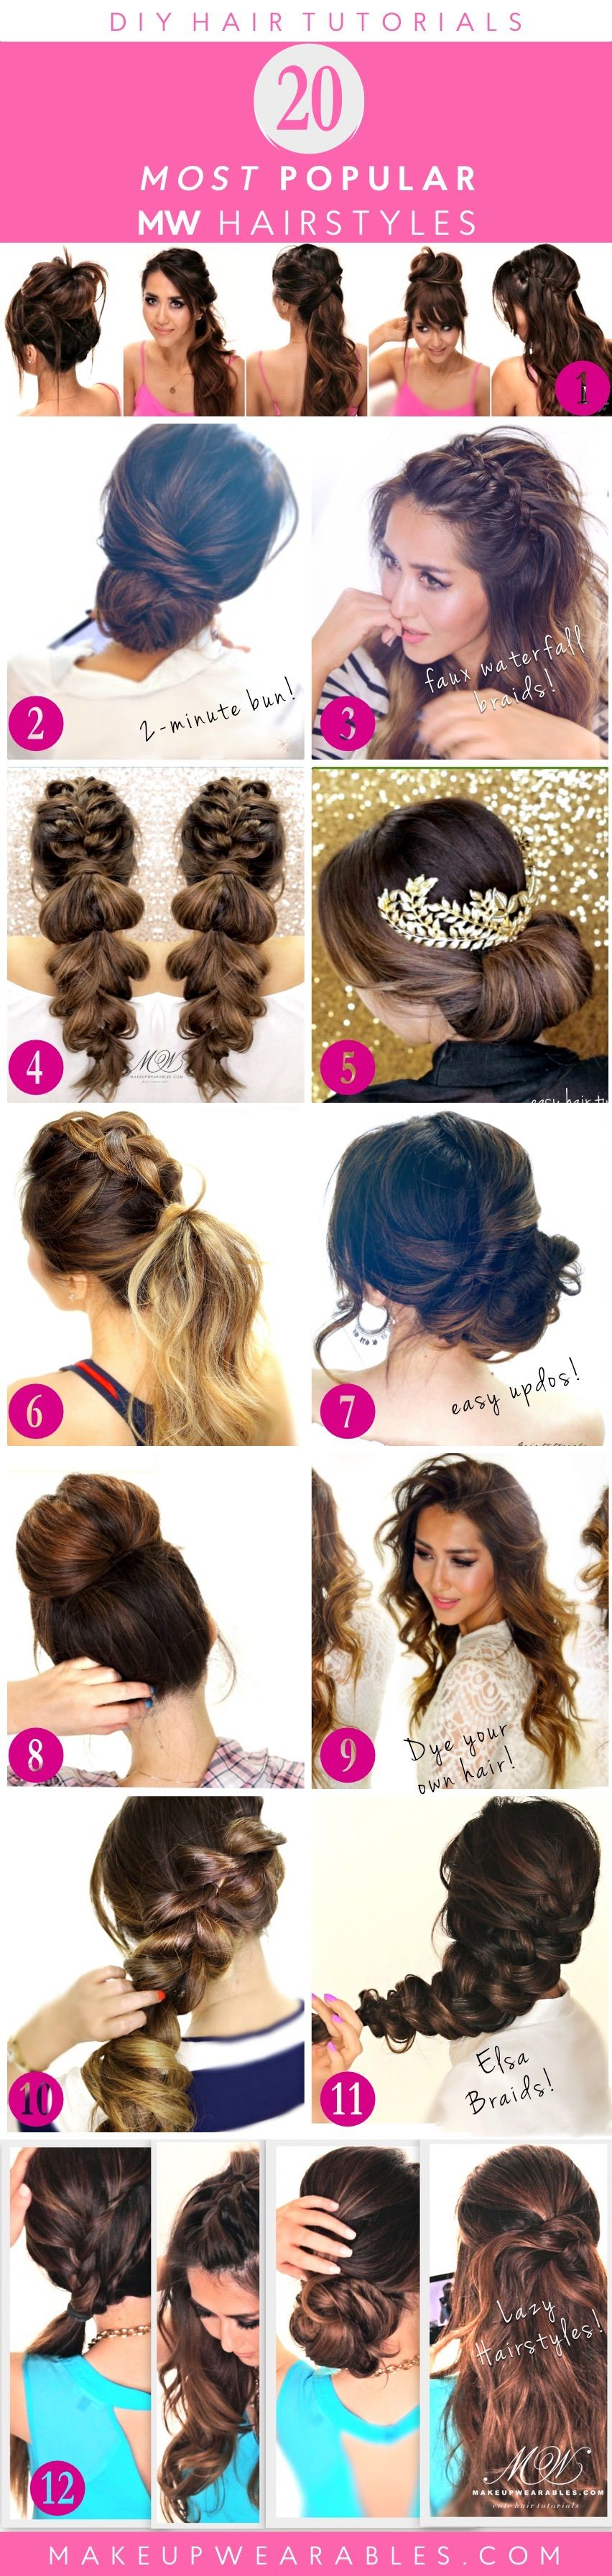 most popular hairstyles of easy hairstyles hair